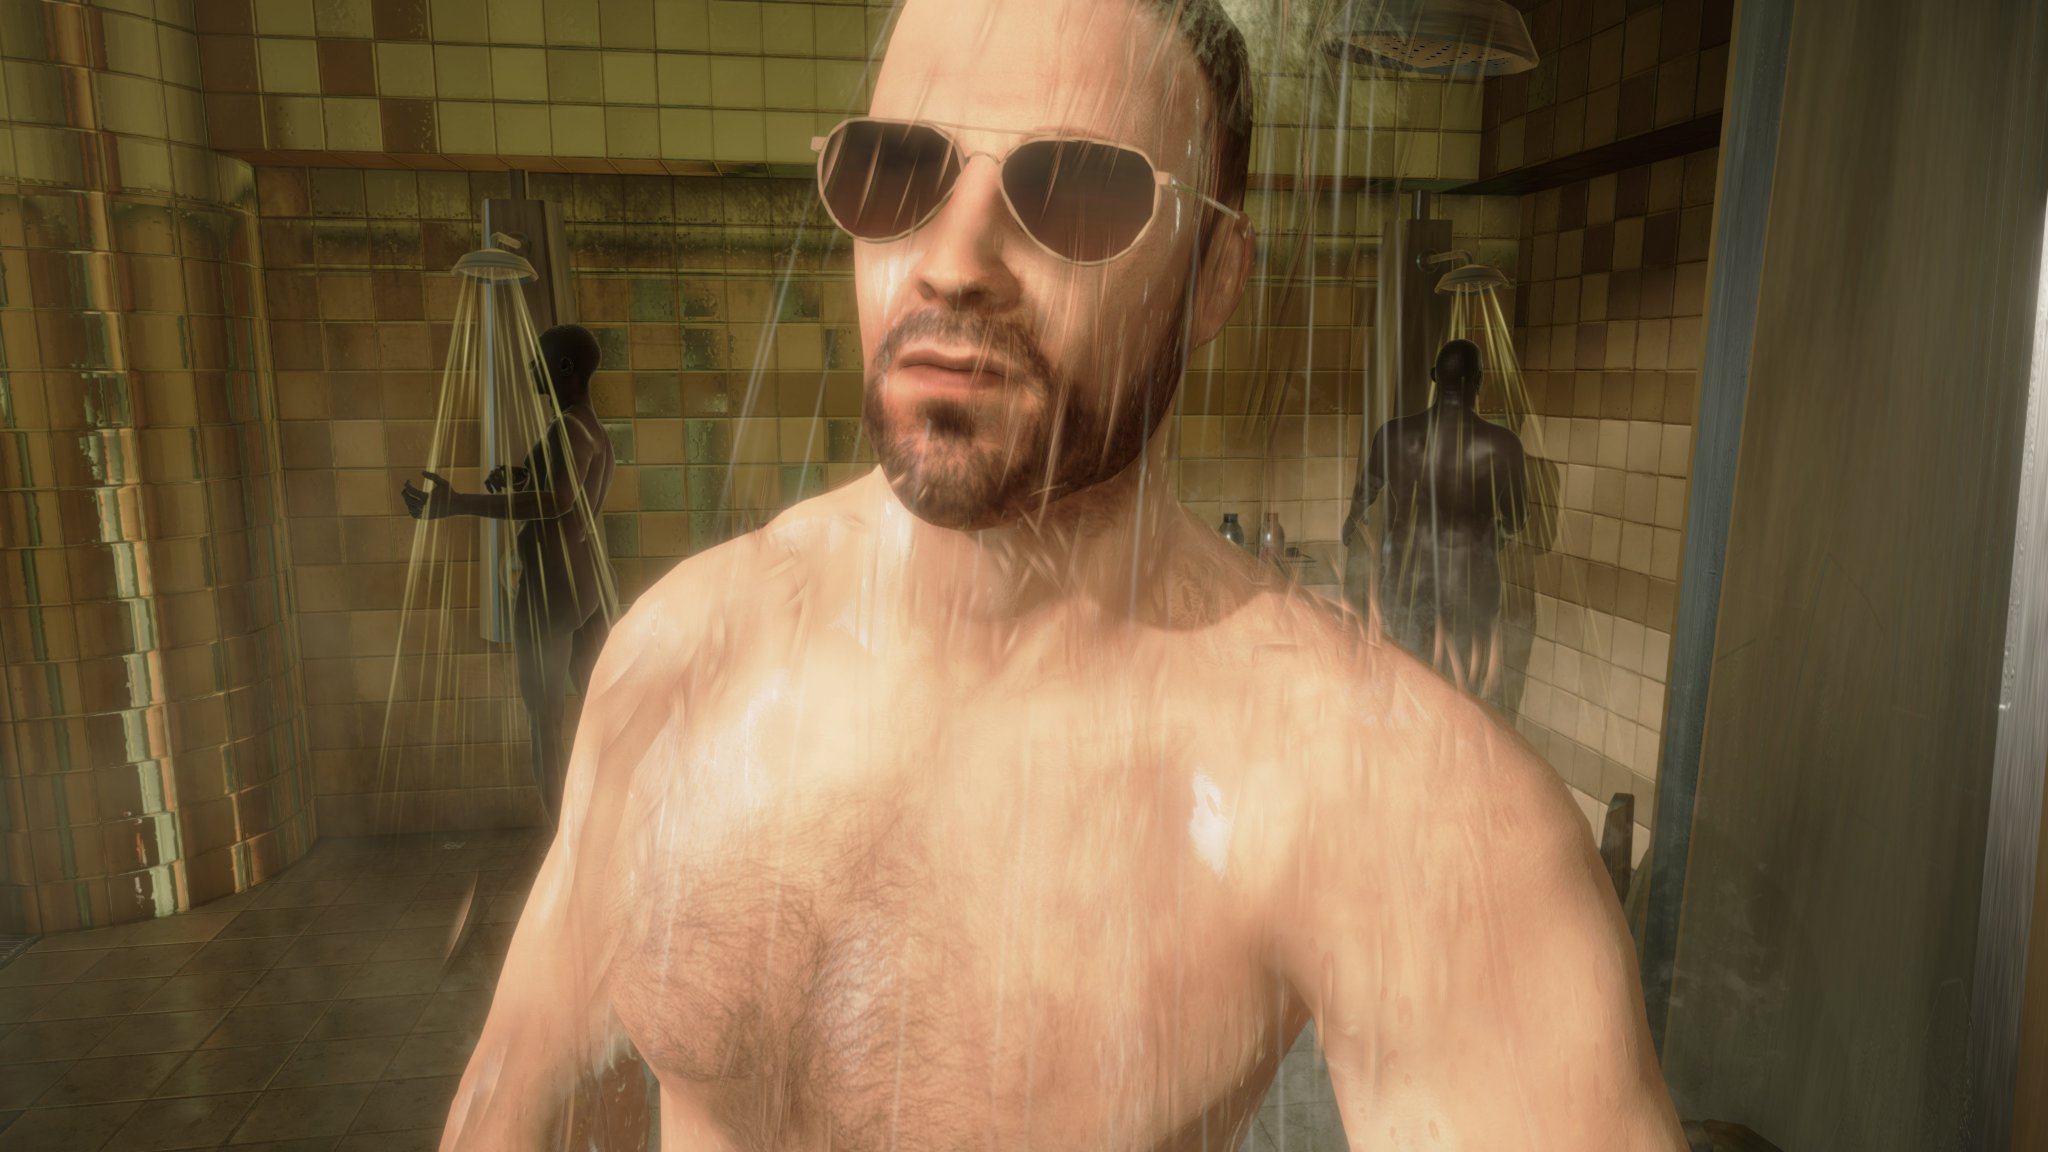 the best male shower simulation just got even better cara download